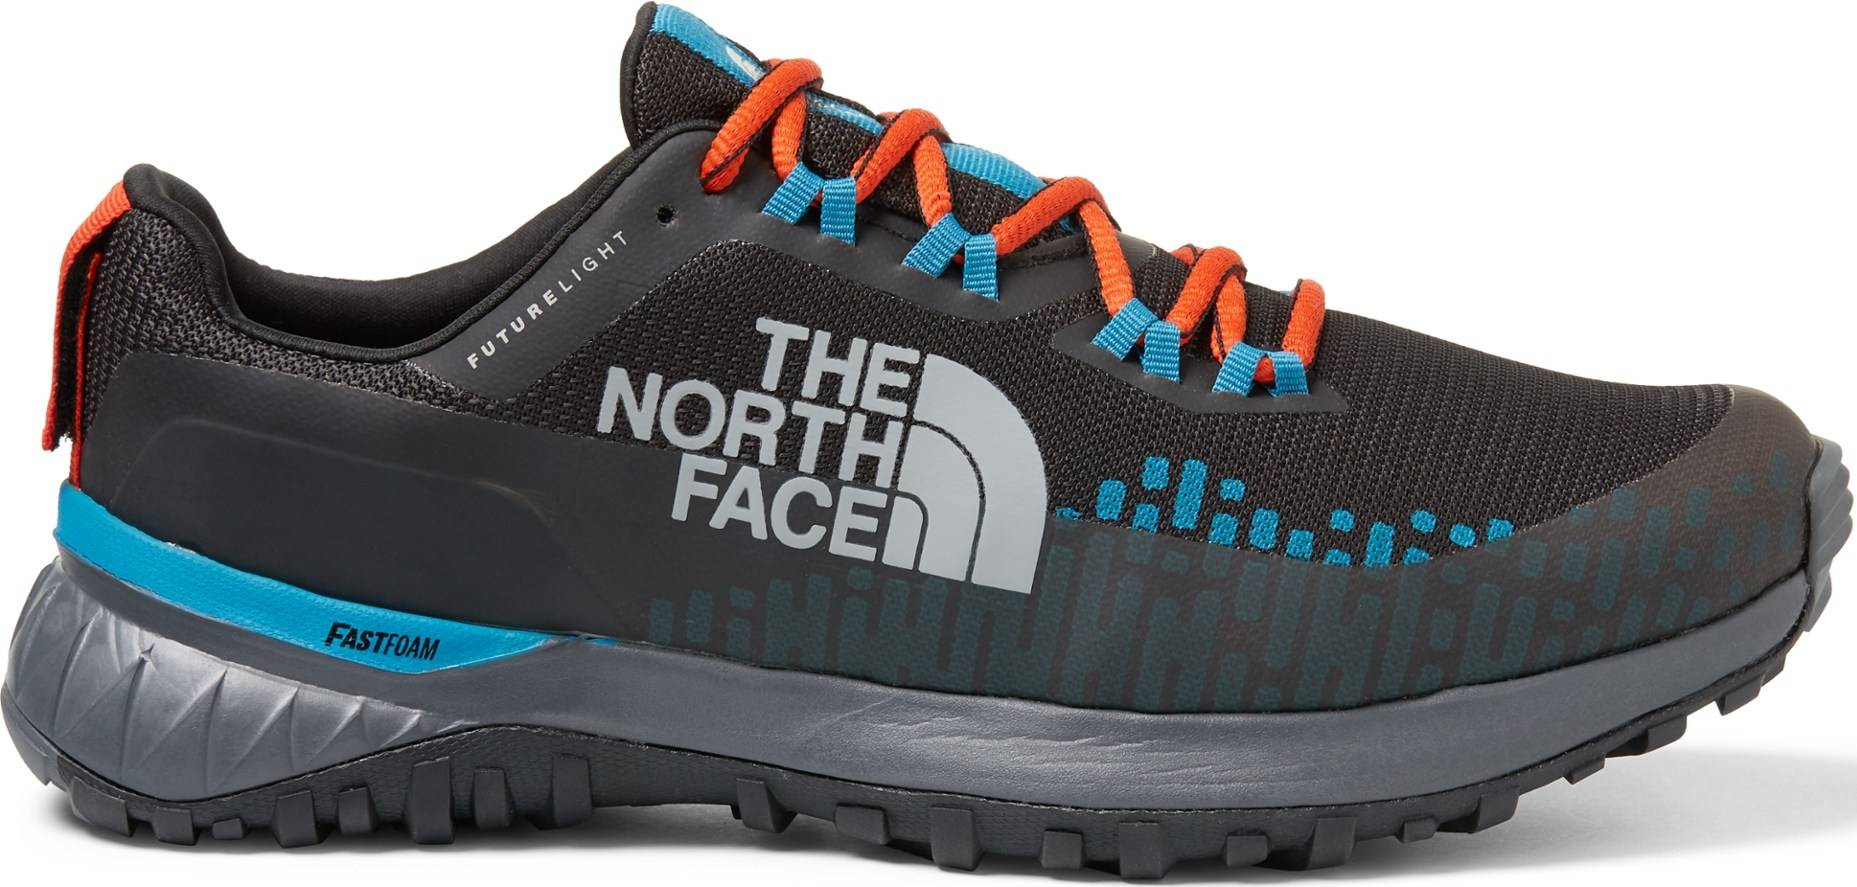 Review of The North Face Ultra Traction